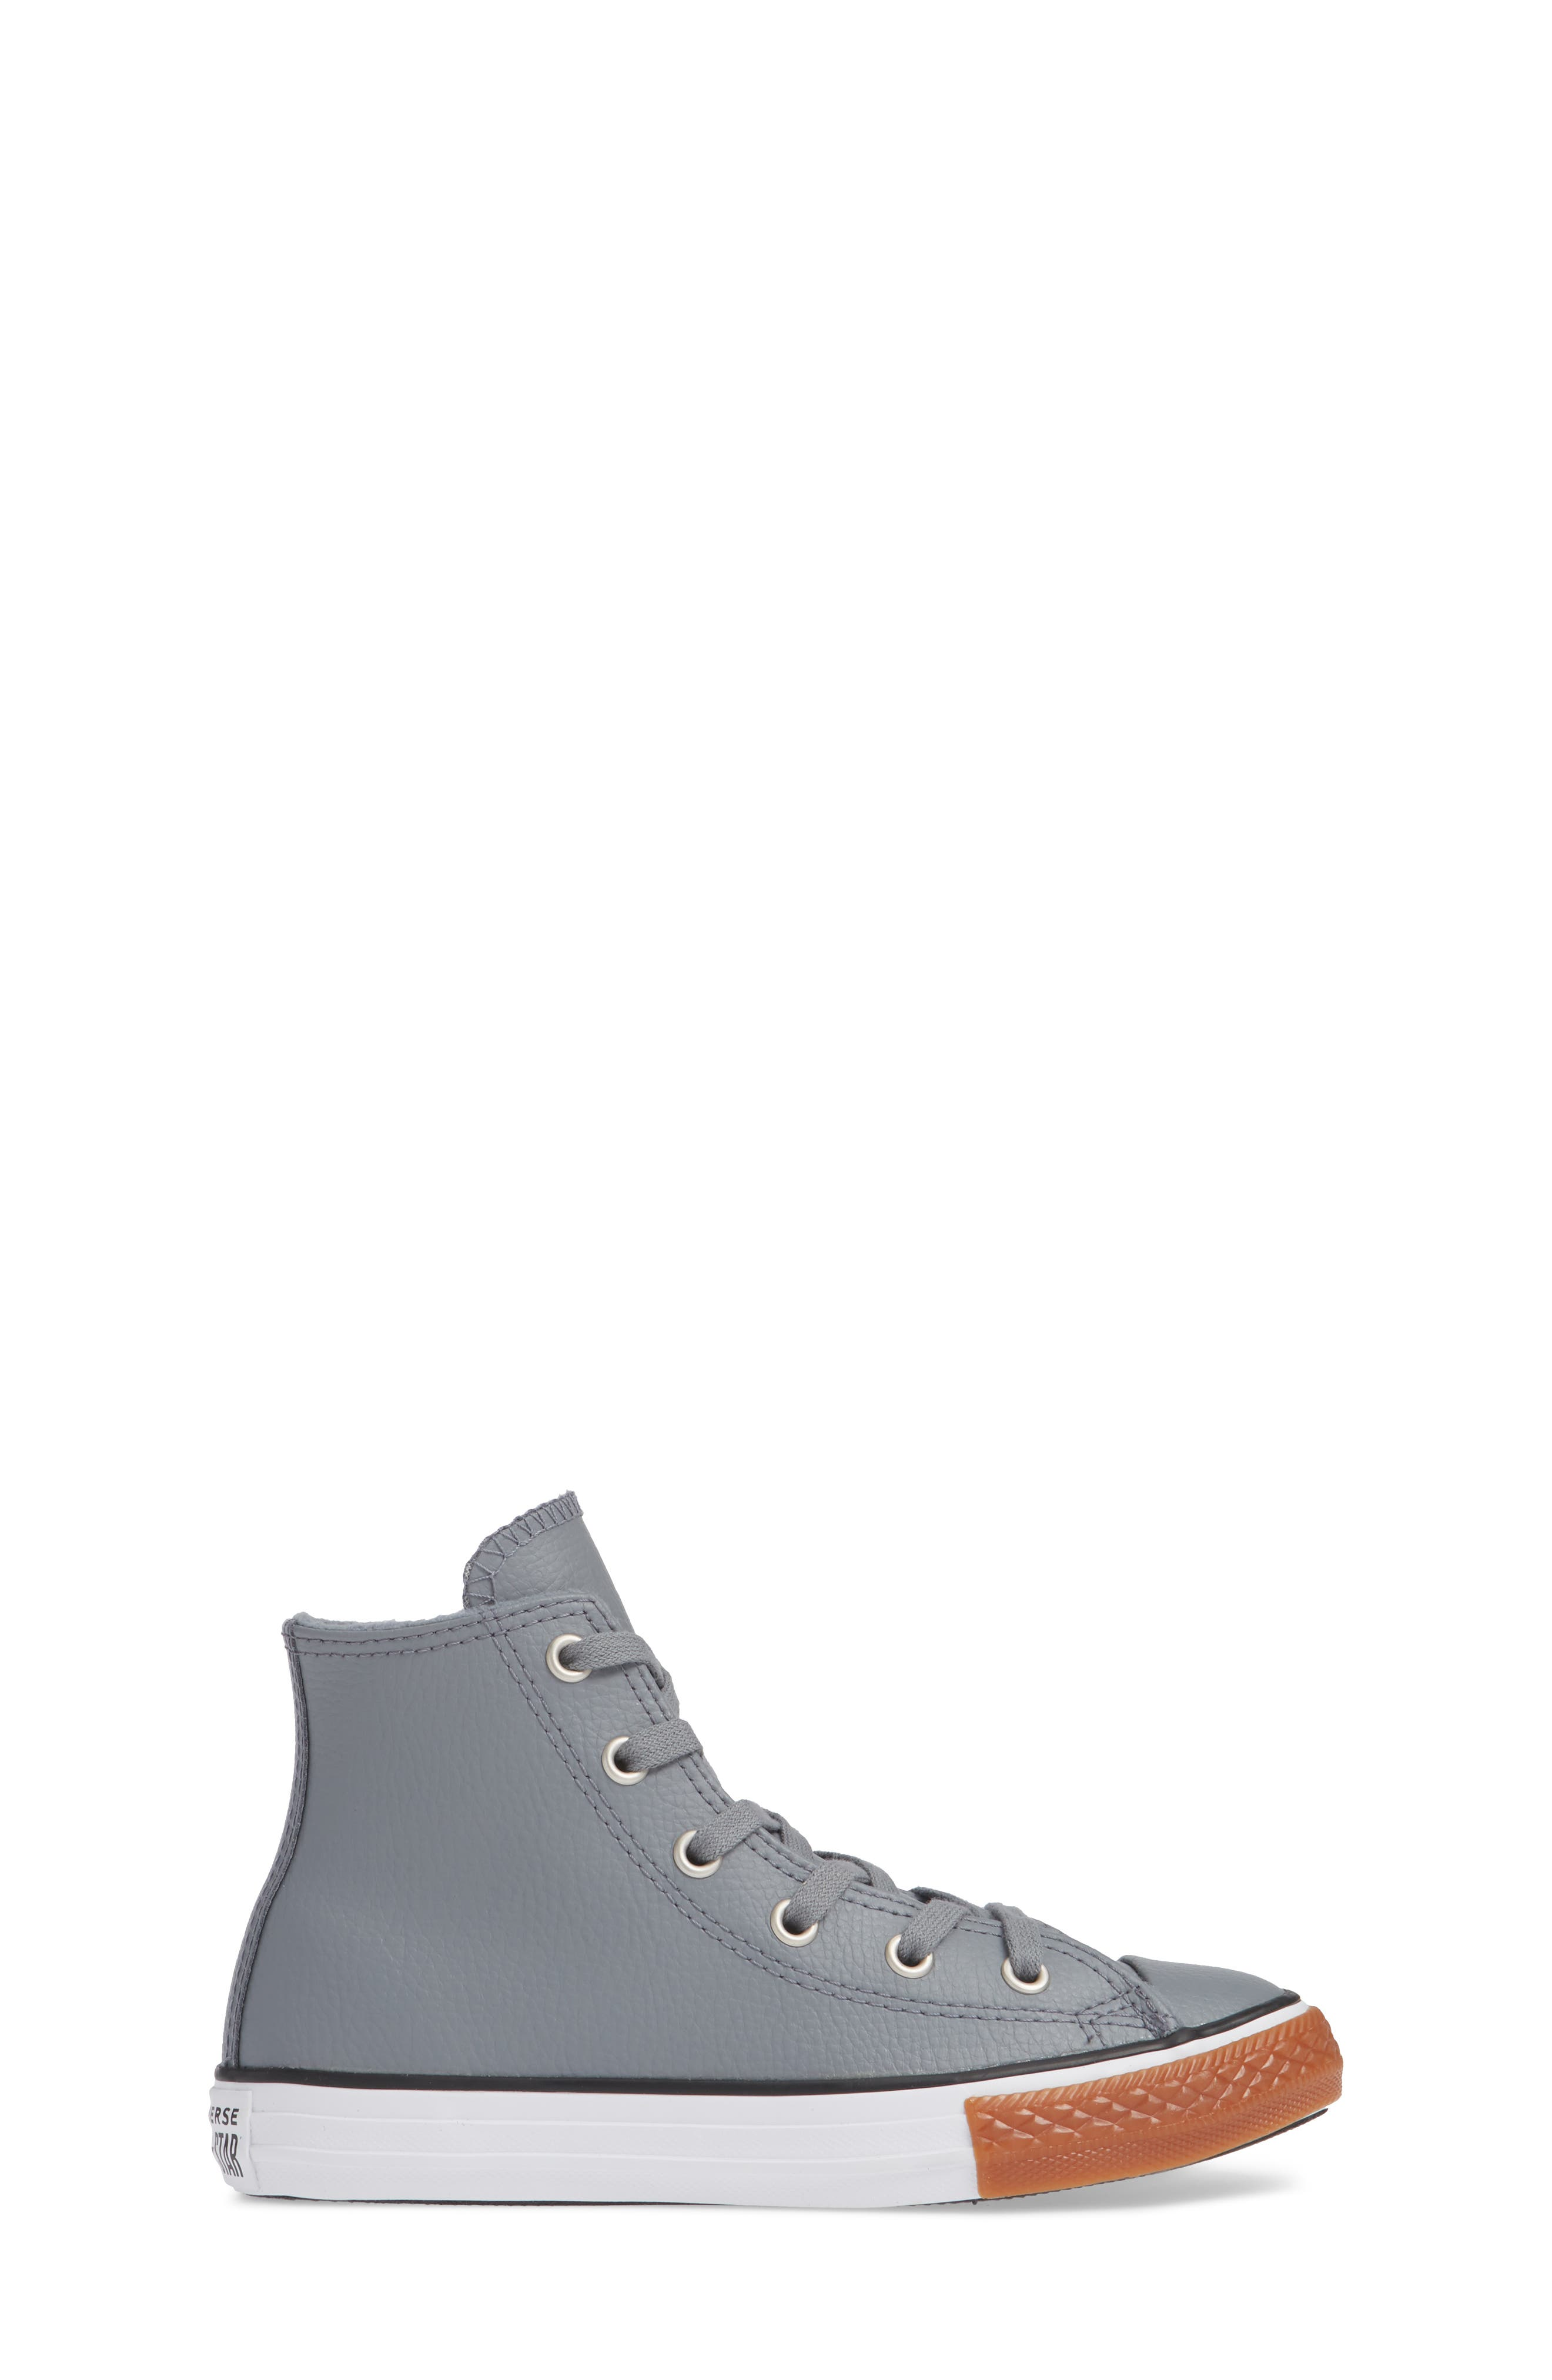 Chuck Taylor<sup>®</sup> All Star<sup>®</sup> No Gum In Class Leather High Top Sneaker,                             Alternate thumbnail 3, color,                             COOL GREY